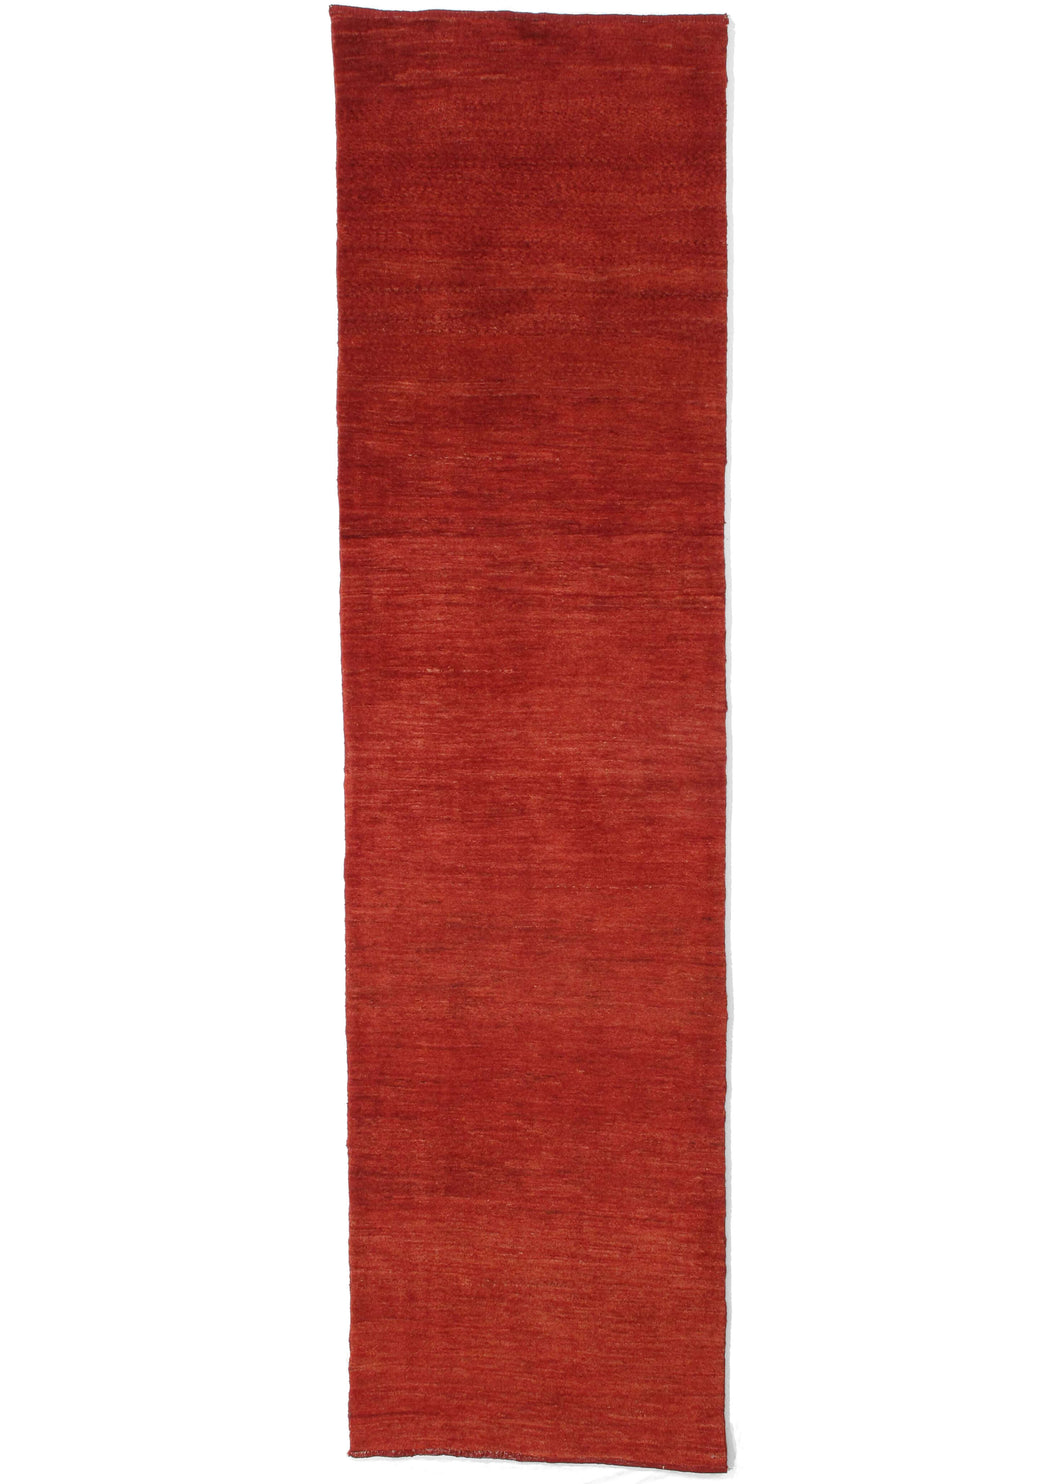 Contemporary Modern Minimal RED South Persian Lori Gabbeh Runner